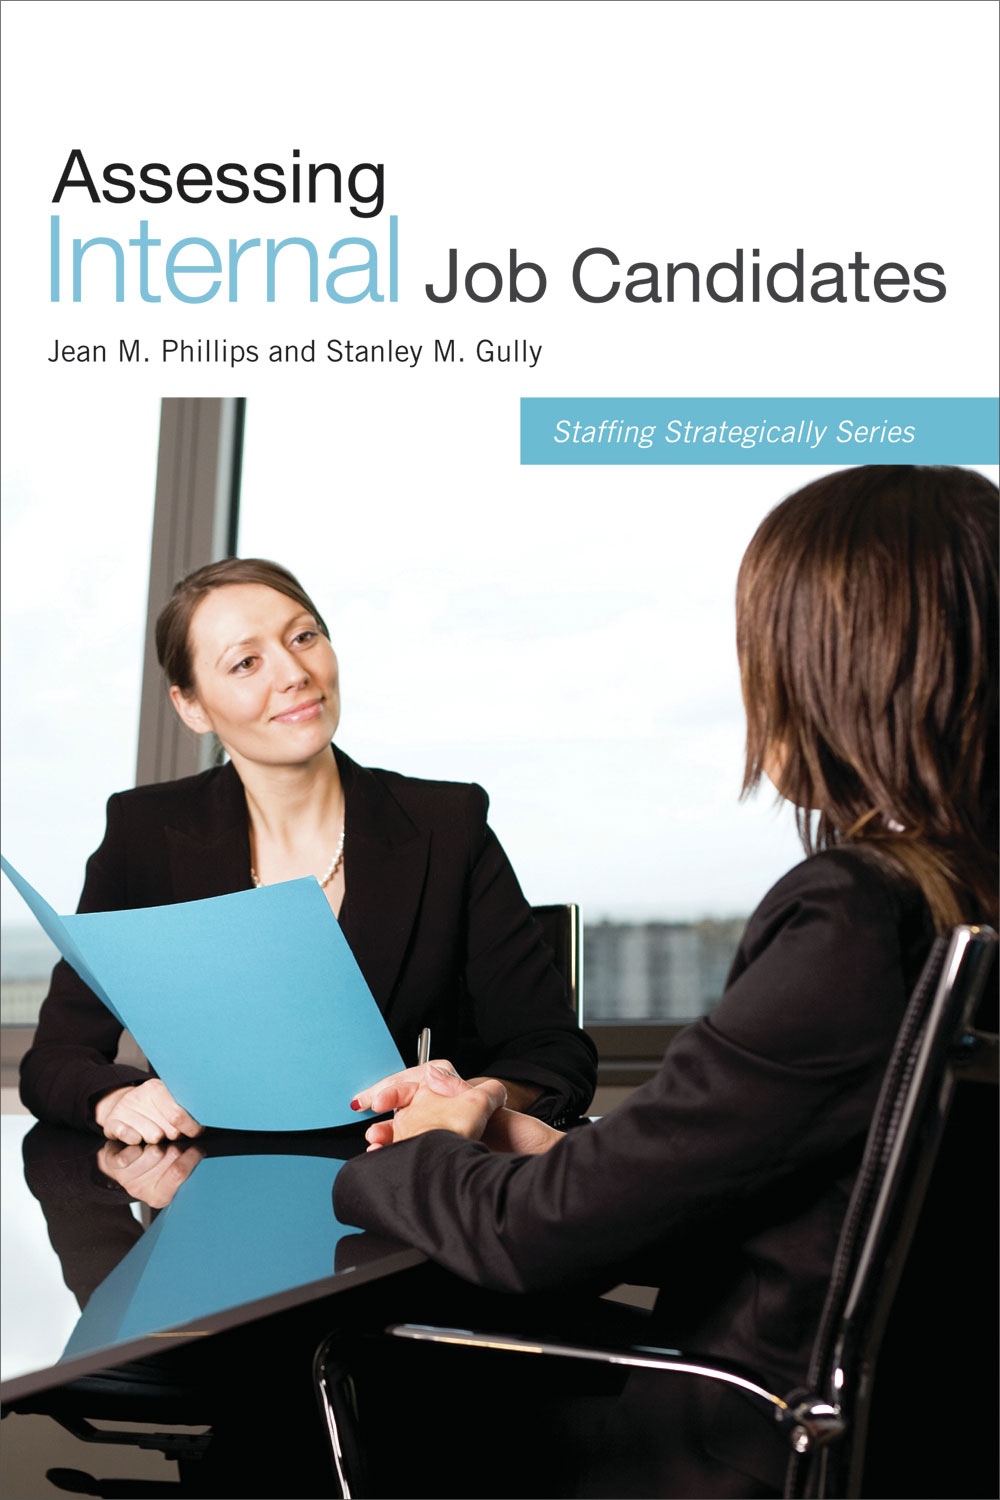 Assessing Internal Job Candidates